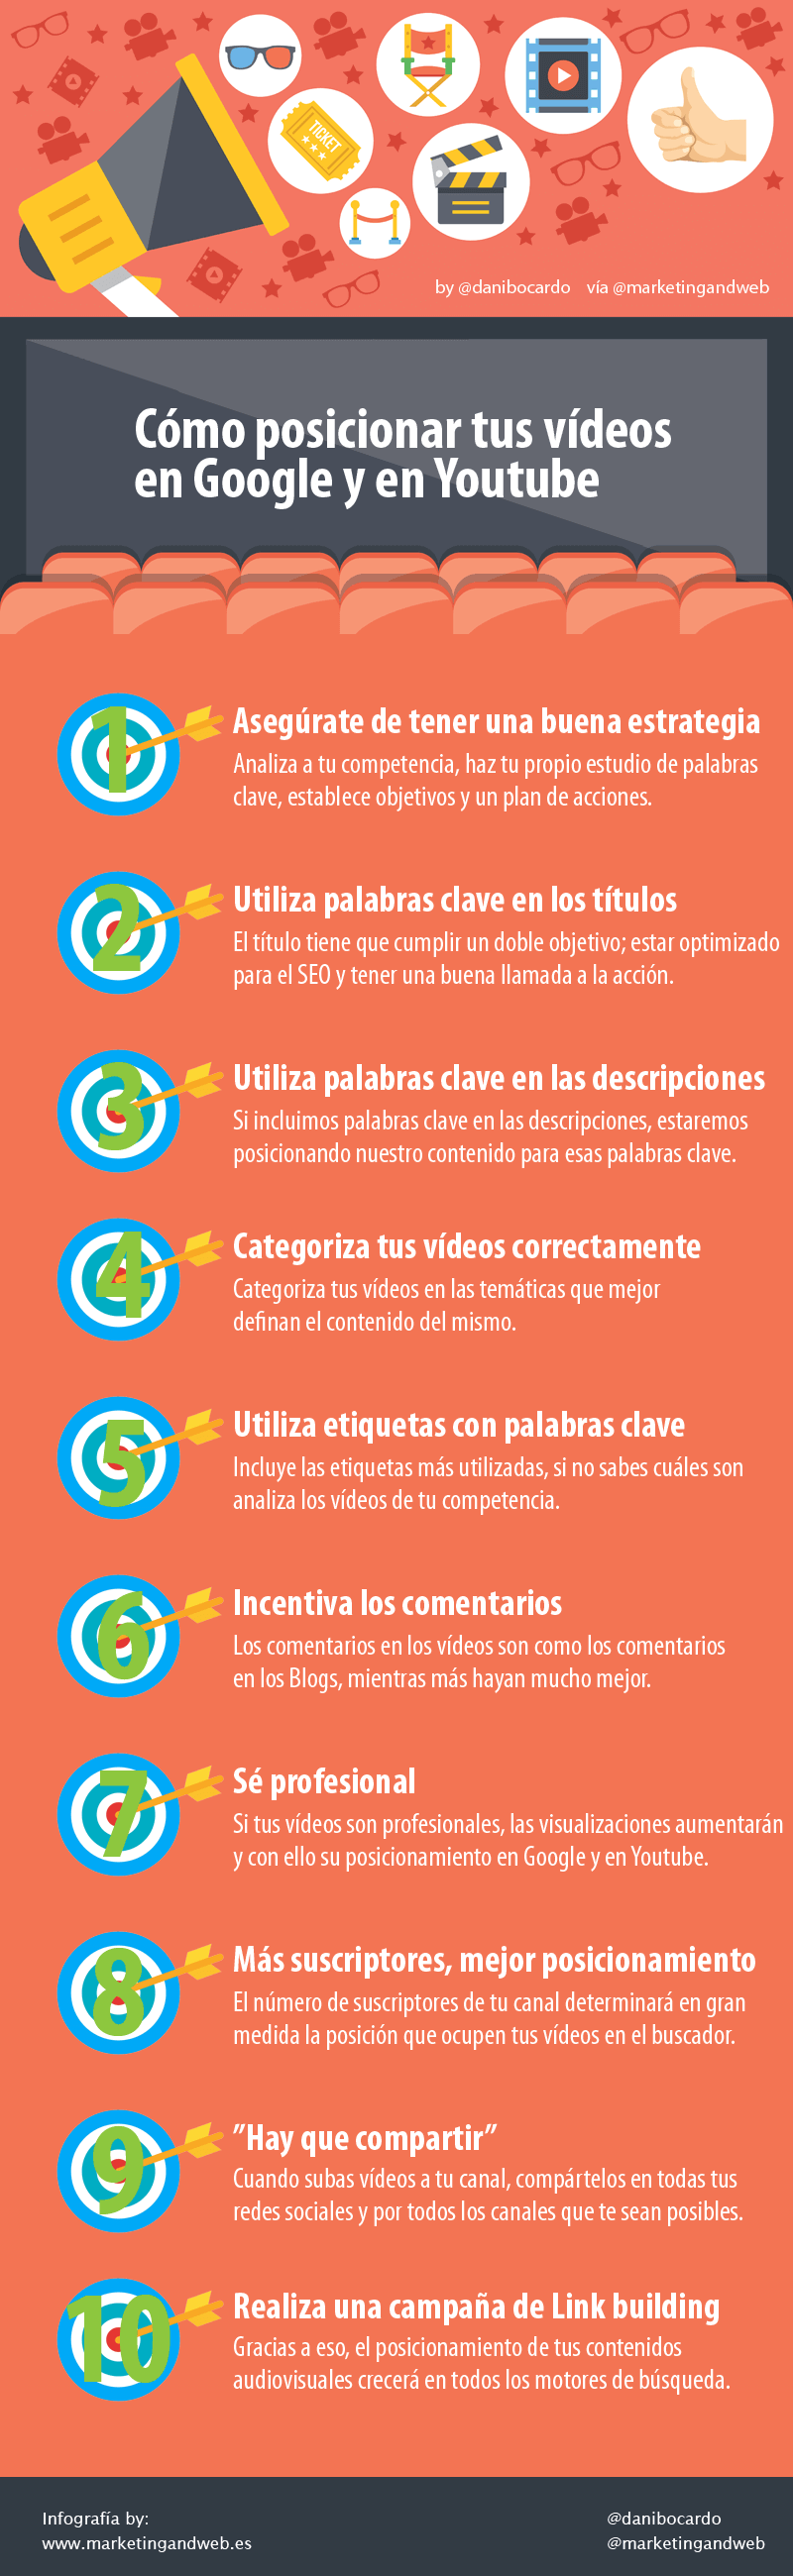 como posicionar tus videos en youtube infografia